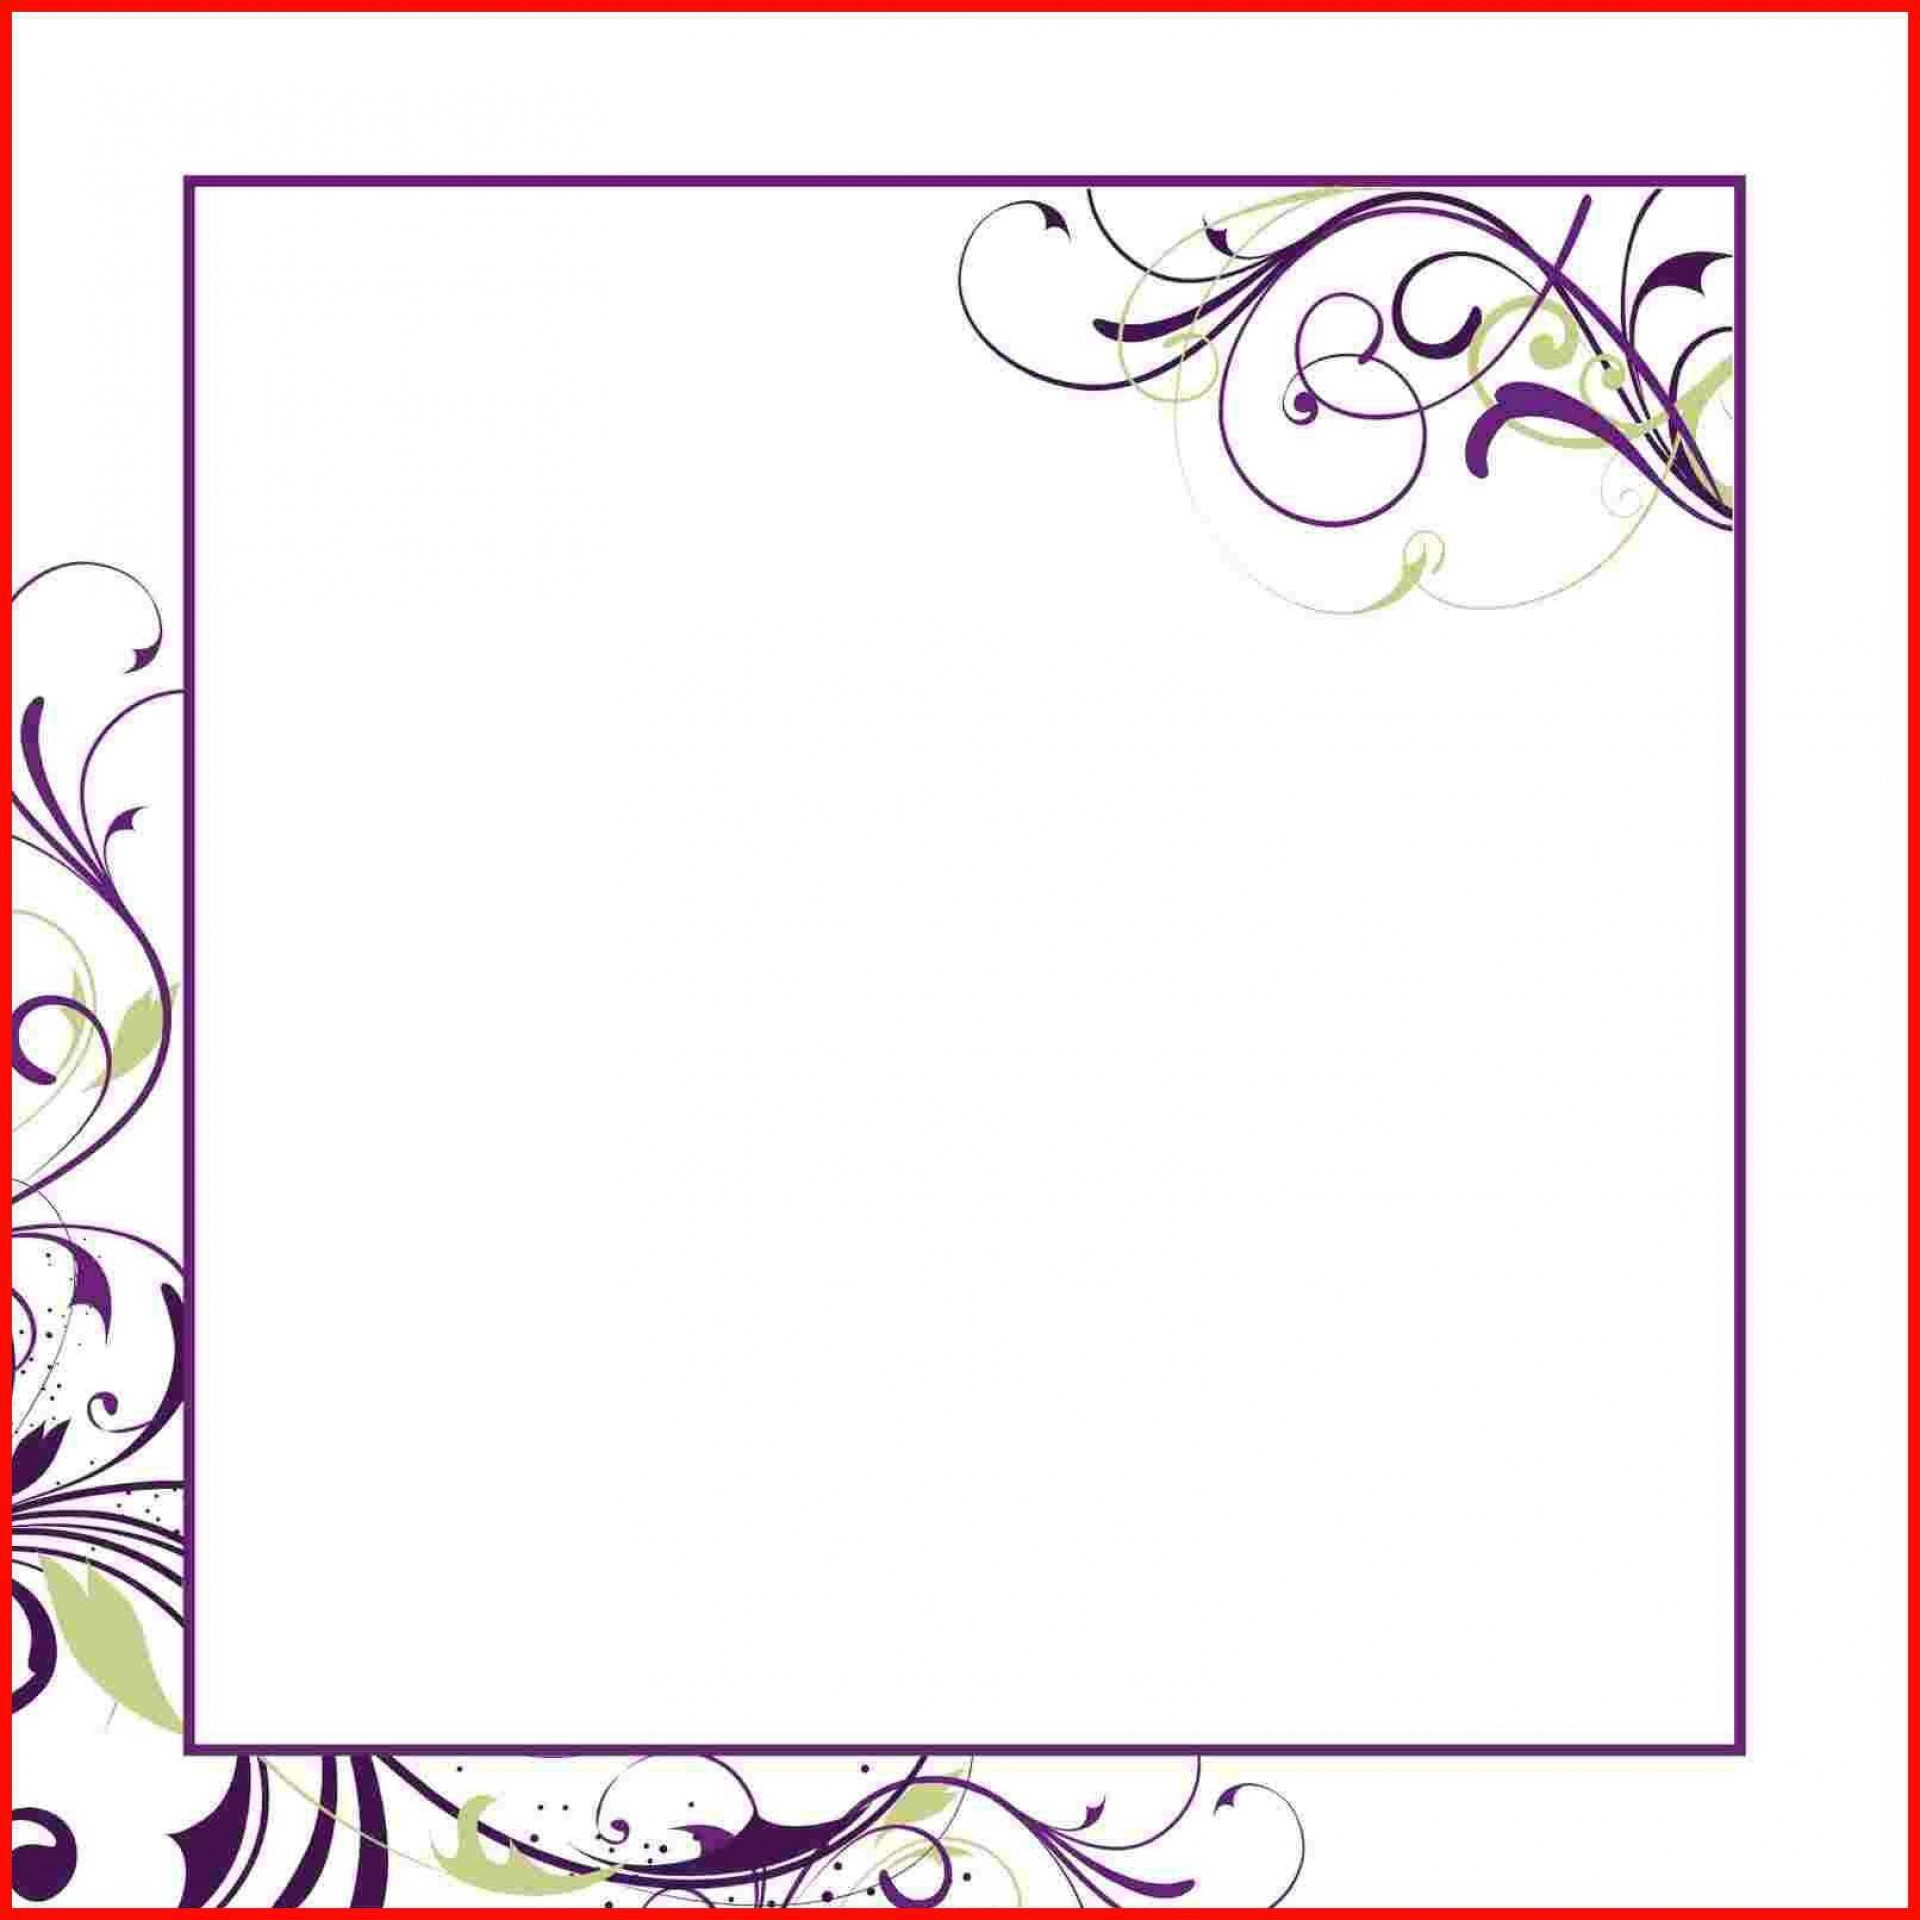 005 Exceptional M Word Invitation Template High Definition  Microsoft Card Wedding Free Download Editable1920